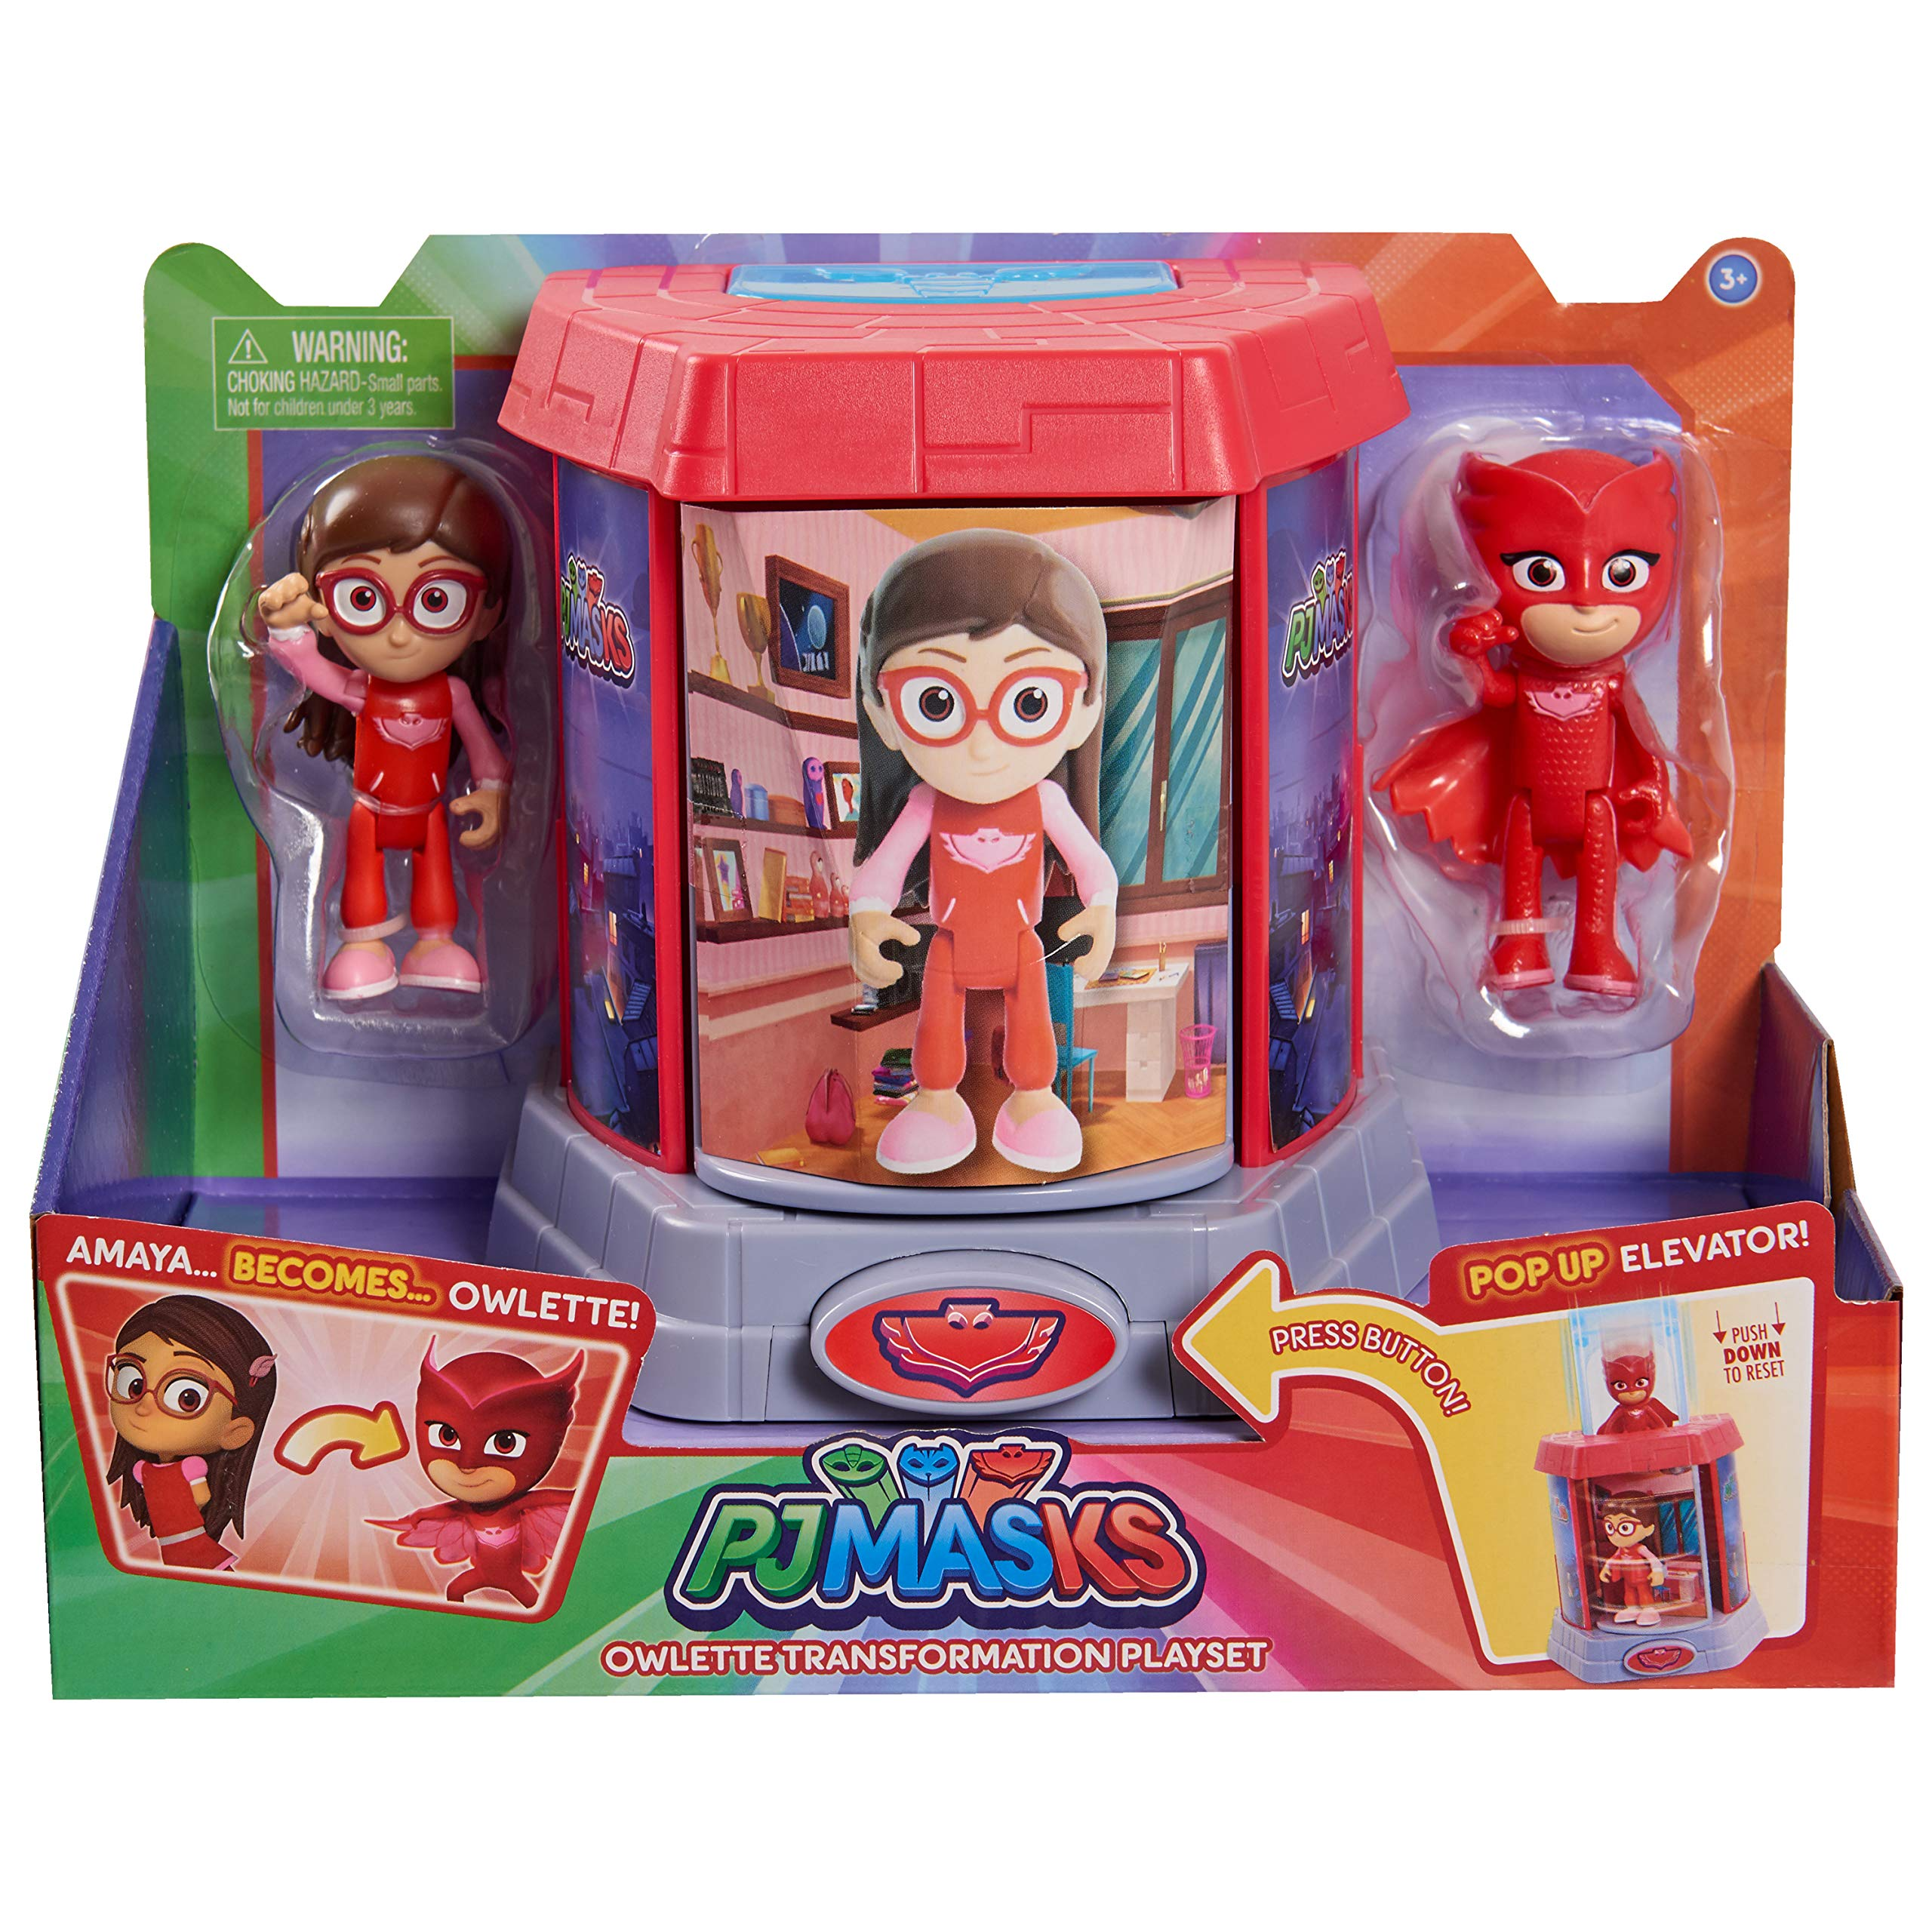 Pj Masks Transforming Figures Playset Buy Online In Israel At Desertcart